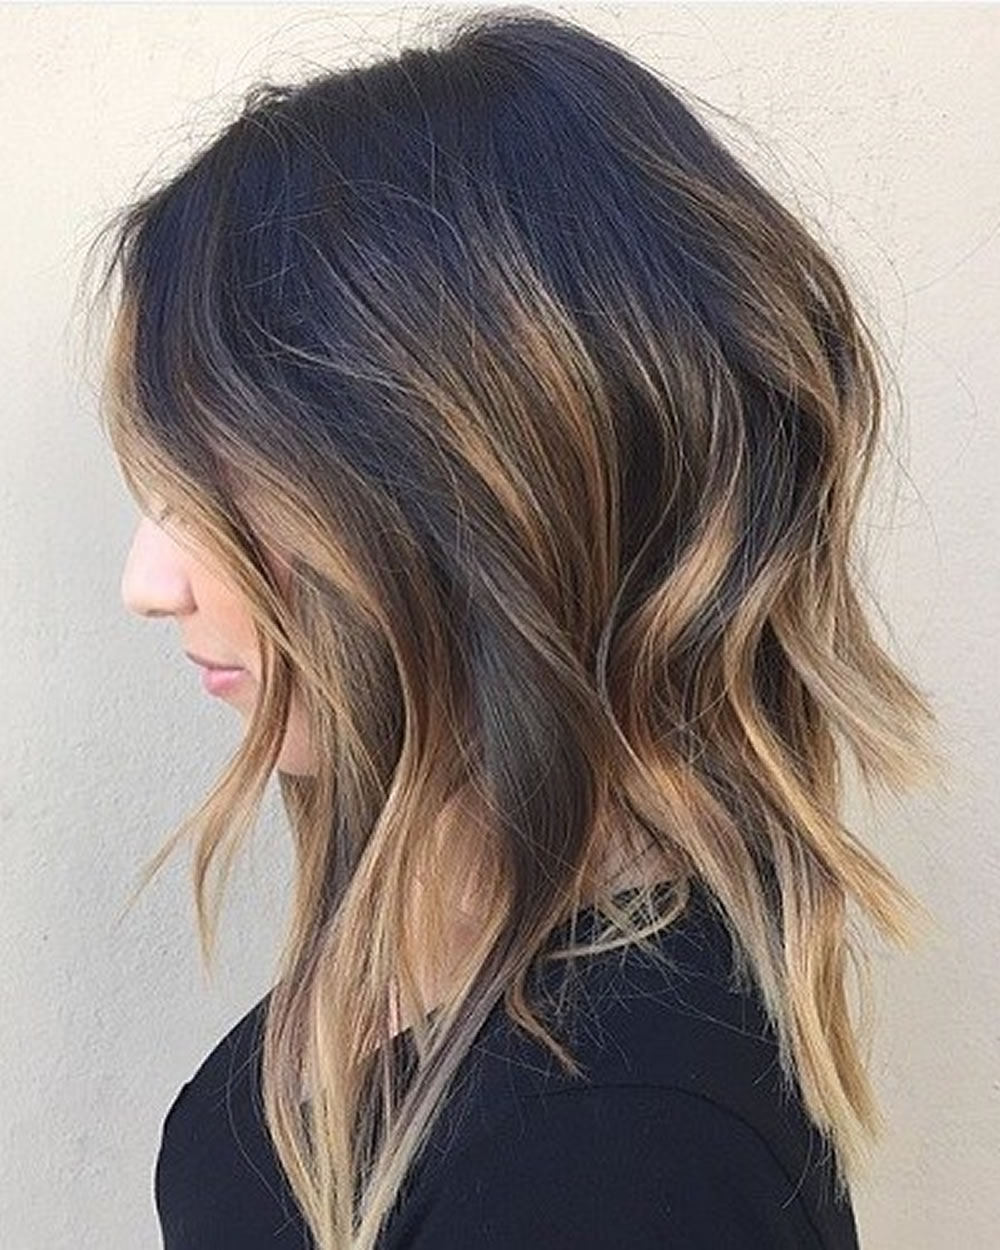 Asymmetrical Short Haircuts With Balayage Highlights 2018 – 2019 Pertaining To Most Recent Balayage Pixie Haircuts With Tiered Layers (View 10 of 15)